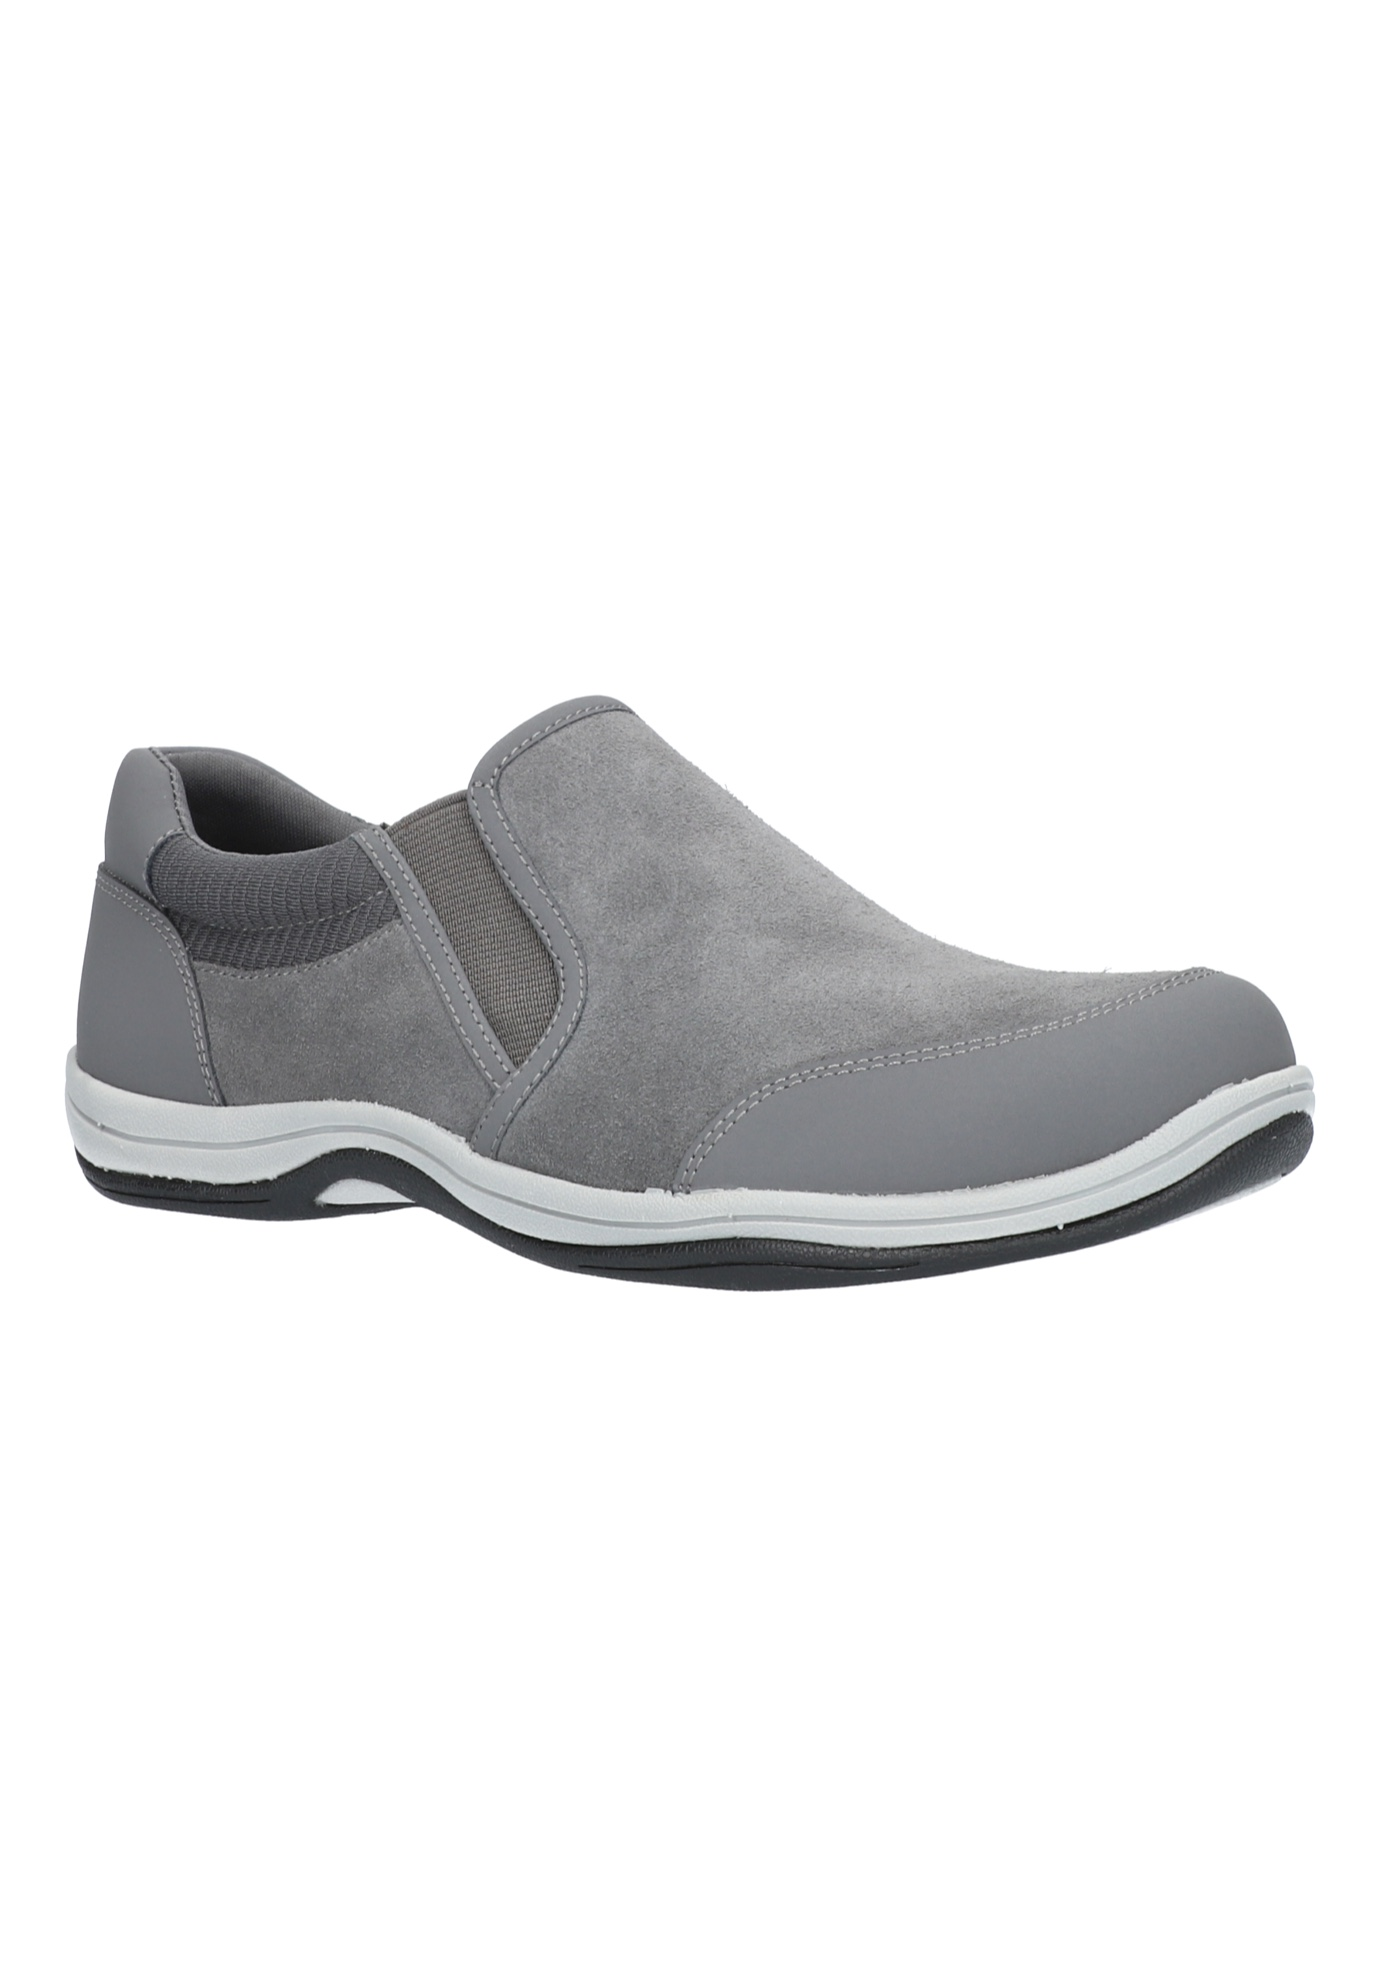 Infinity Flats And Slip Ons by Easy Street Sport,